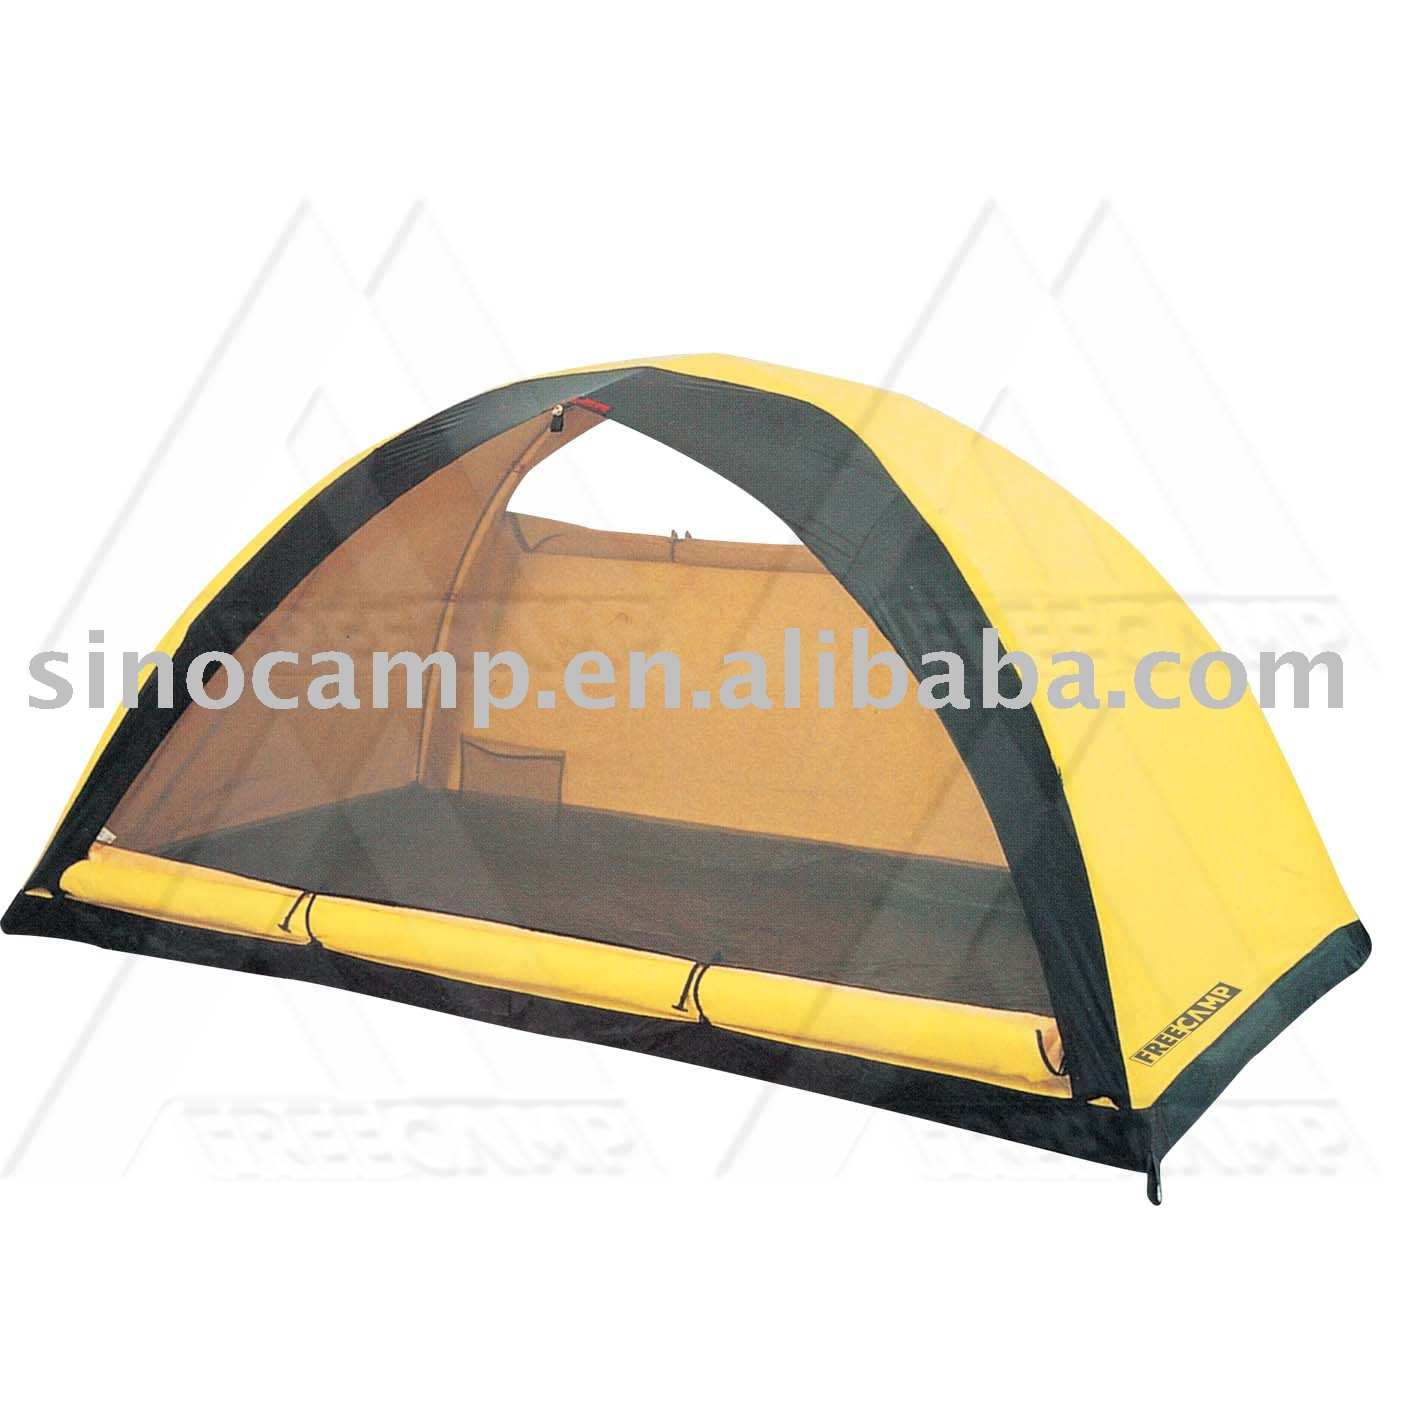 dome tent 2 3 tents view camping tent freecamp product